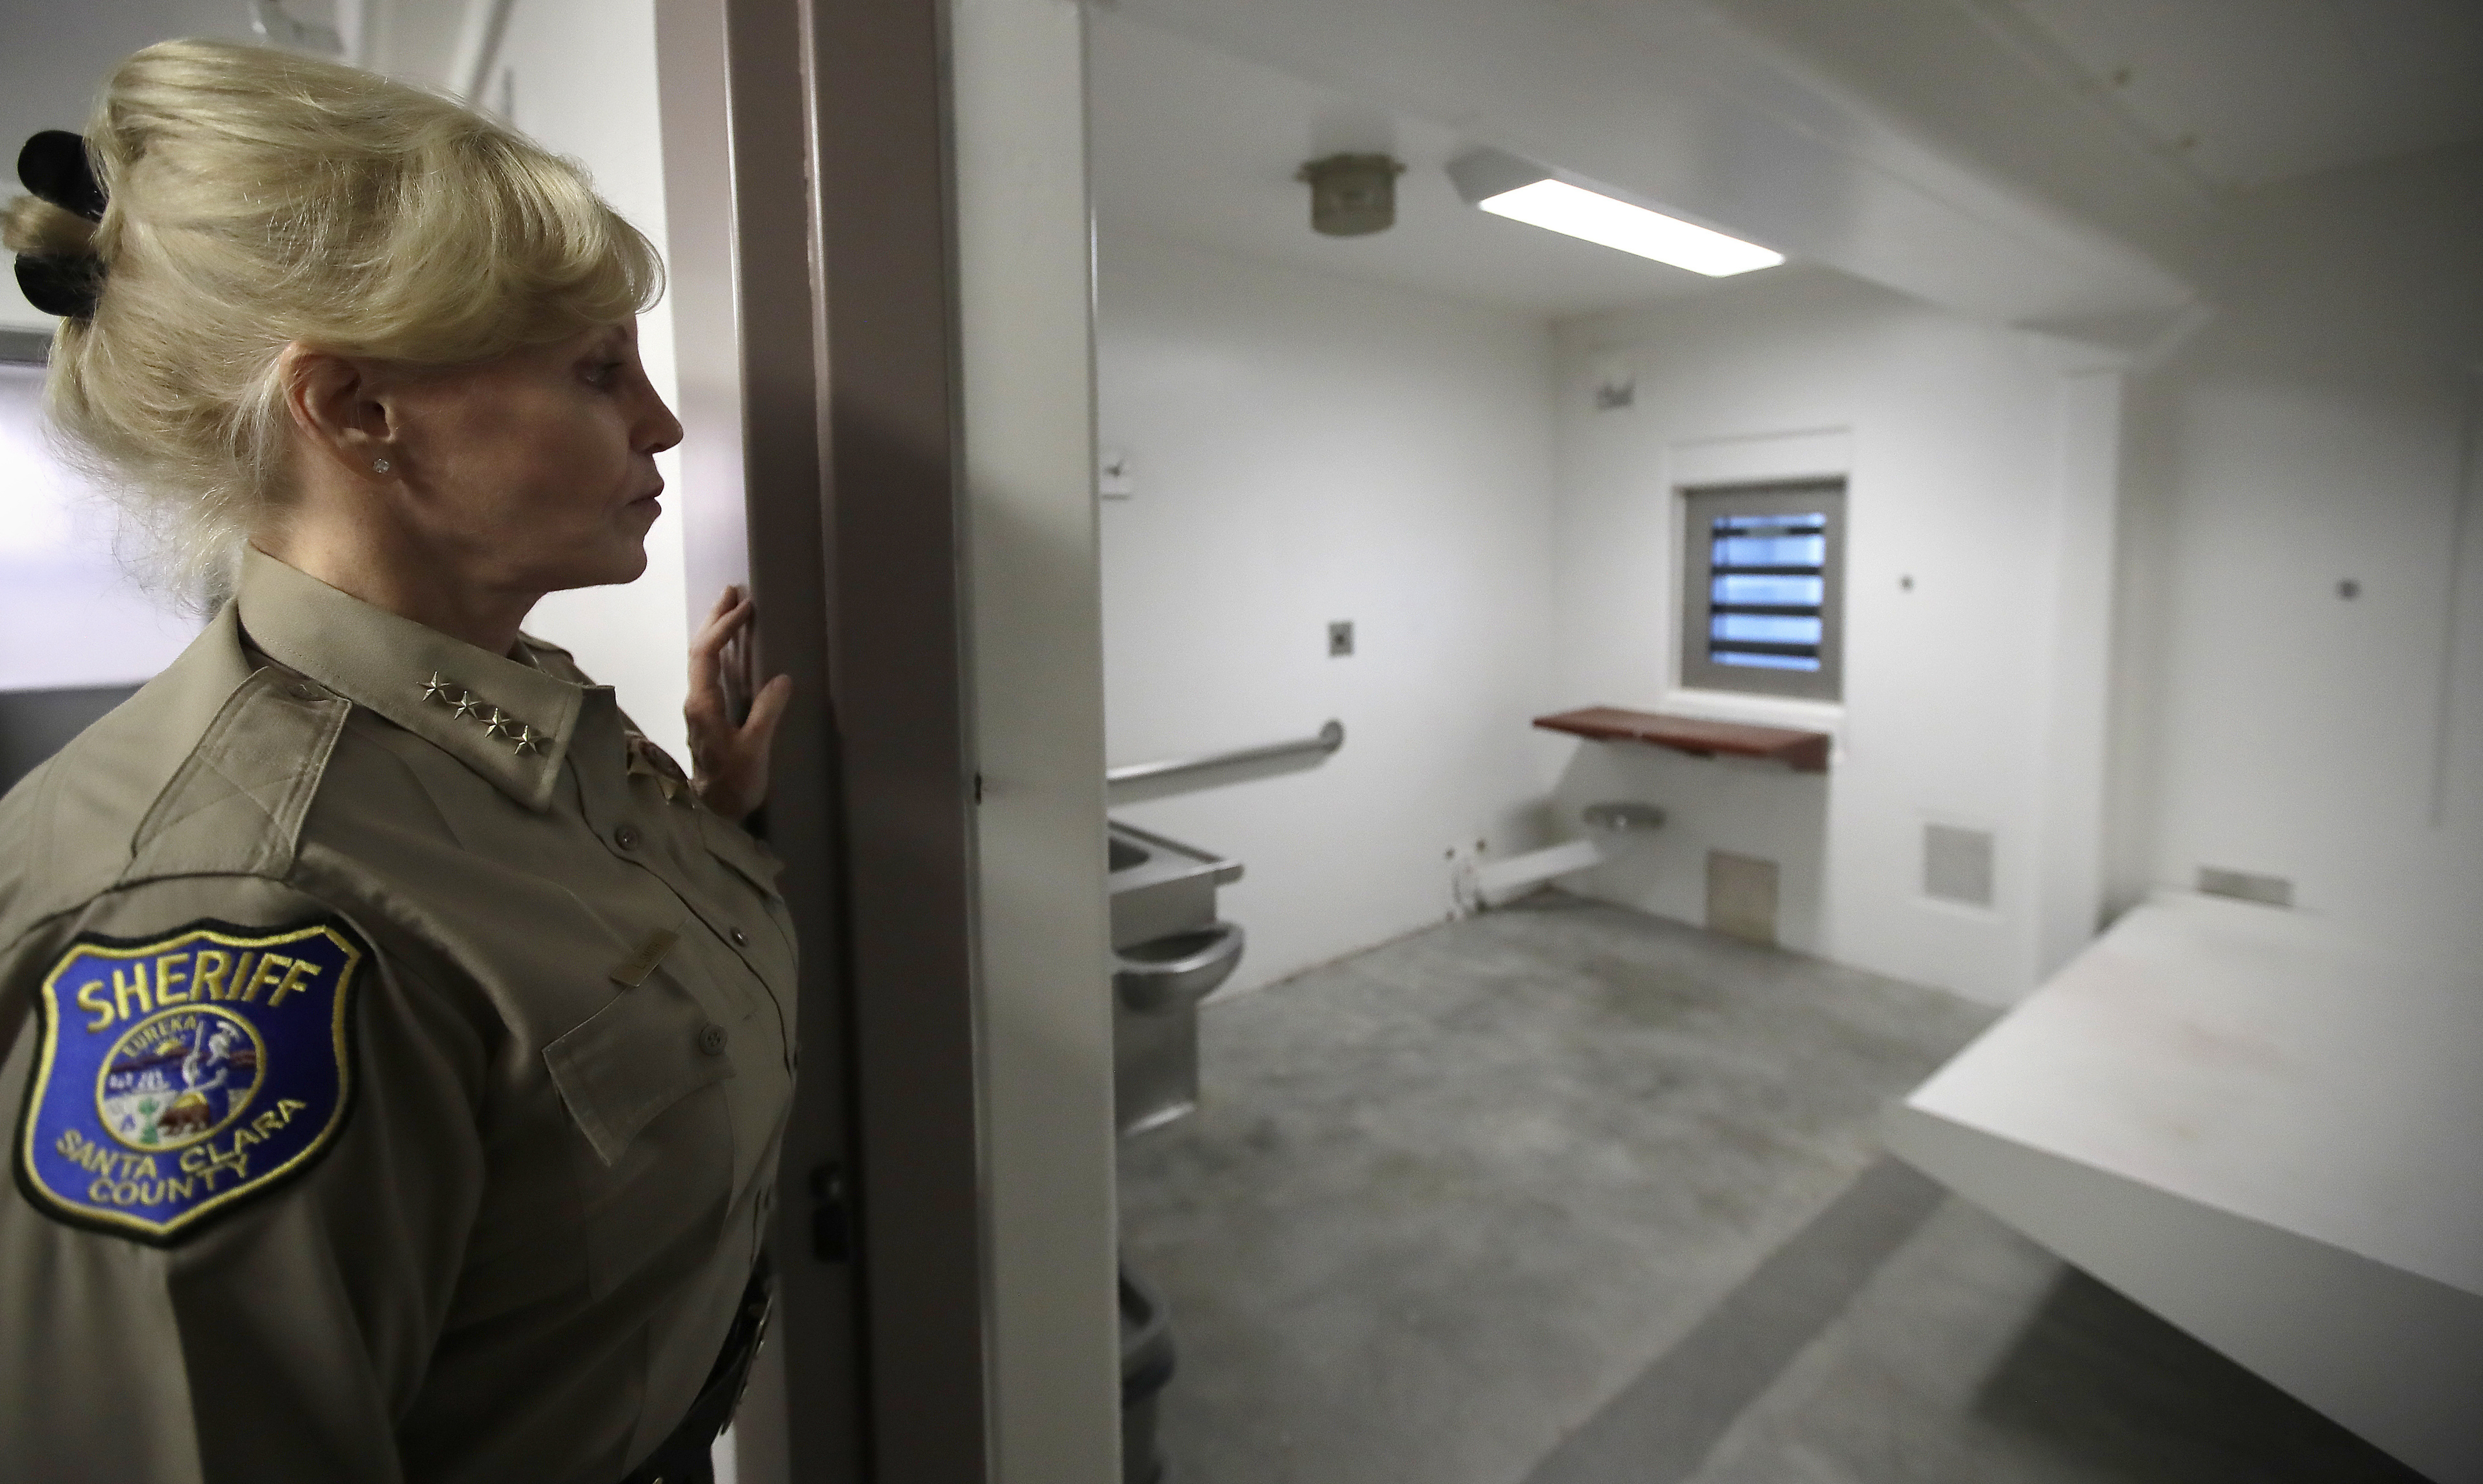 California jails use kinder approach to solitary confinement